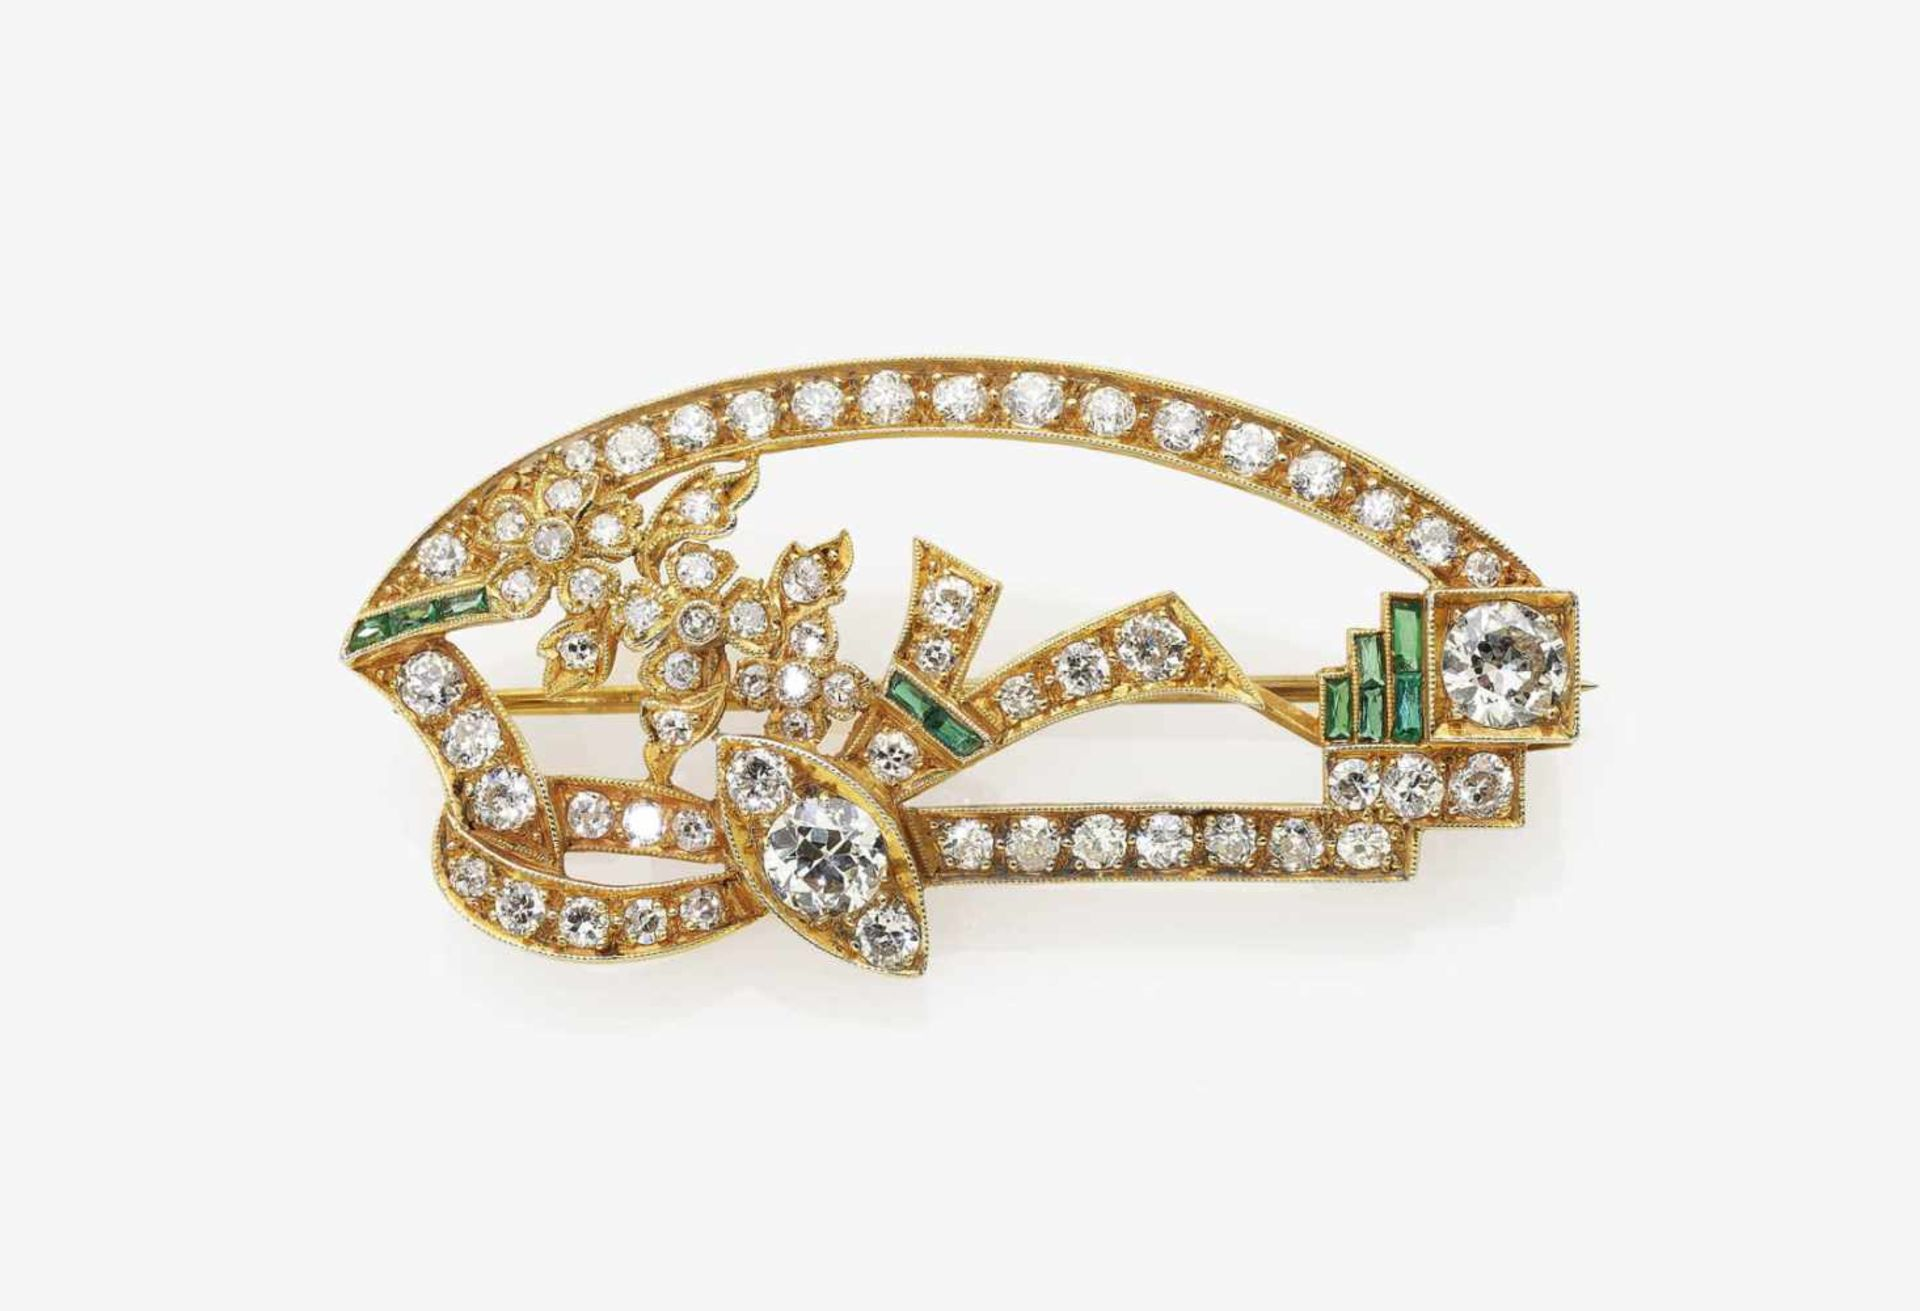 Los 1026 - An Emerald and Diamond stylised Floral Brooch